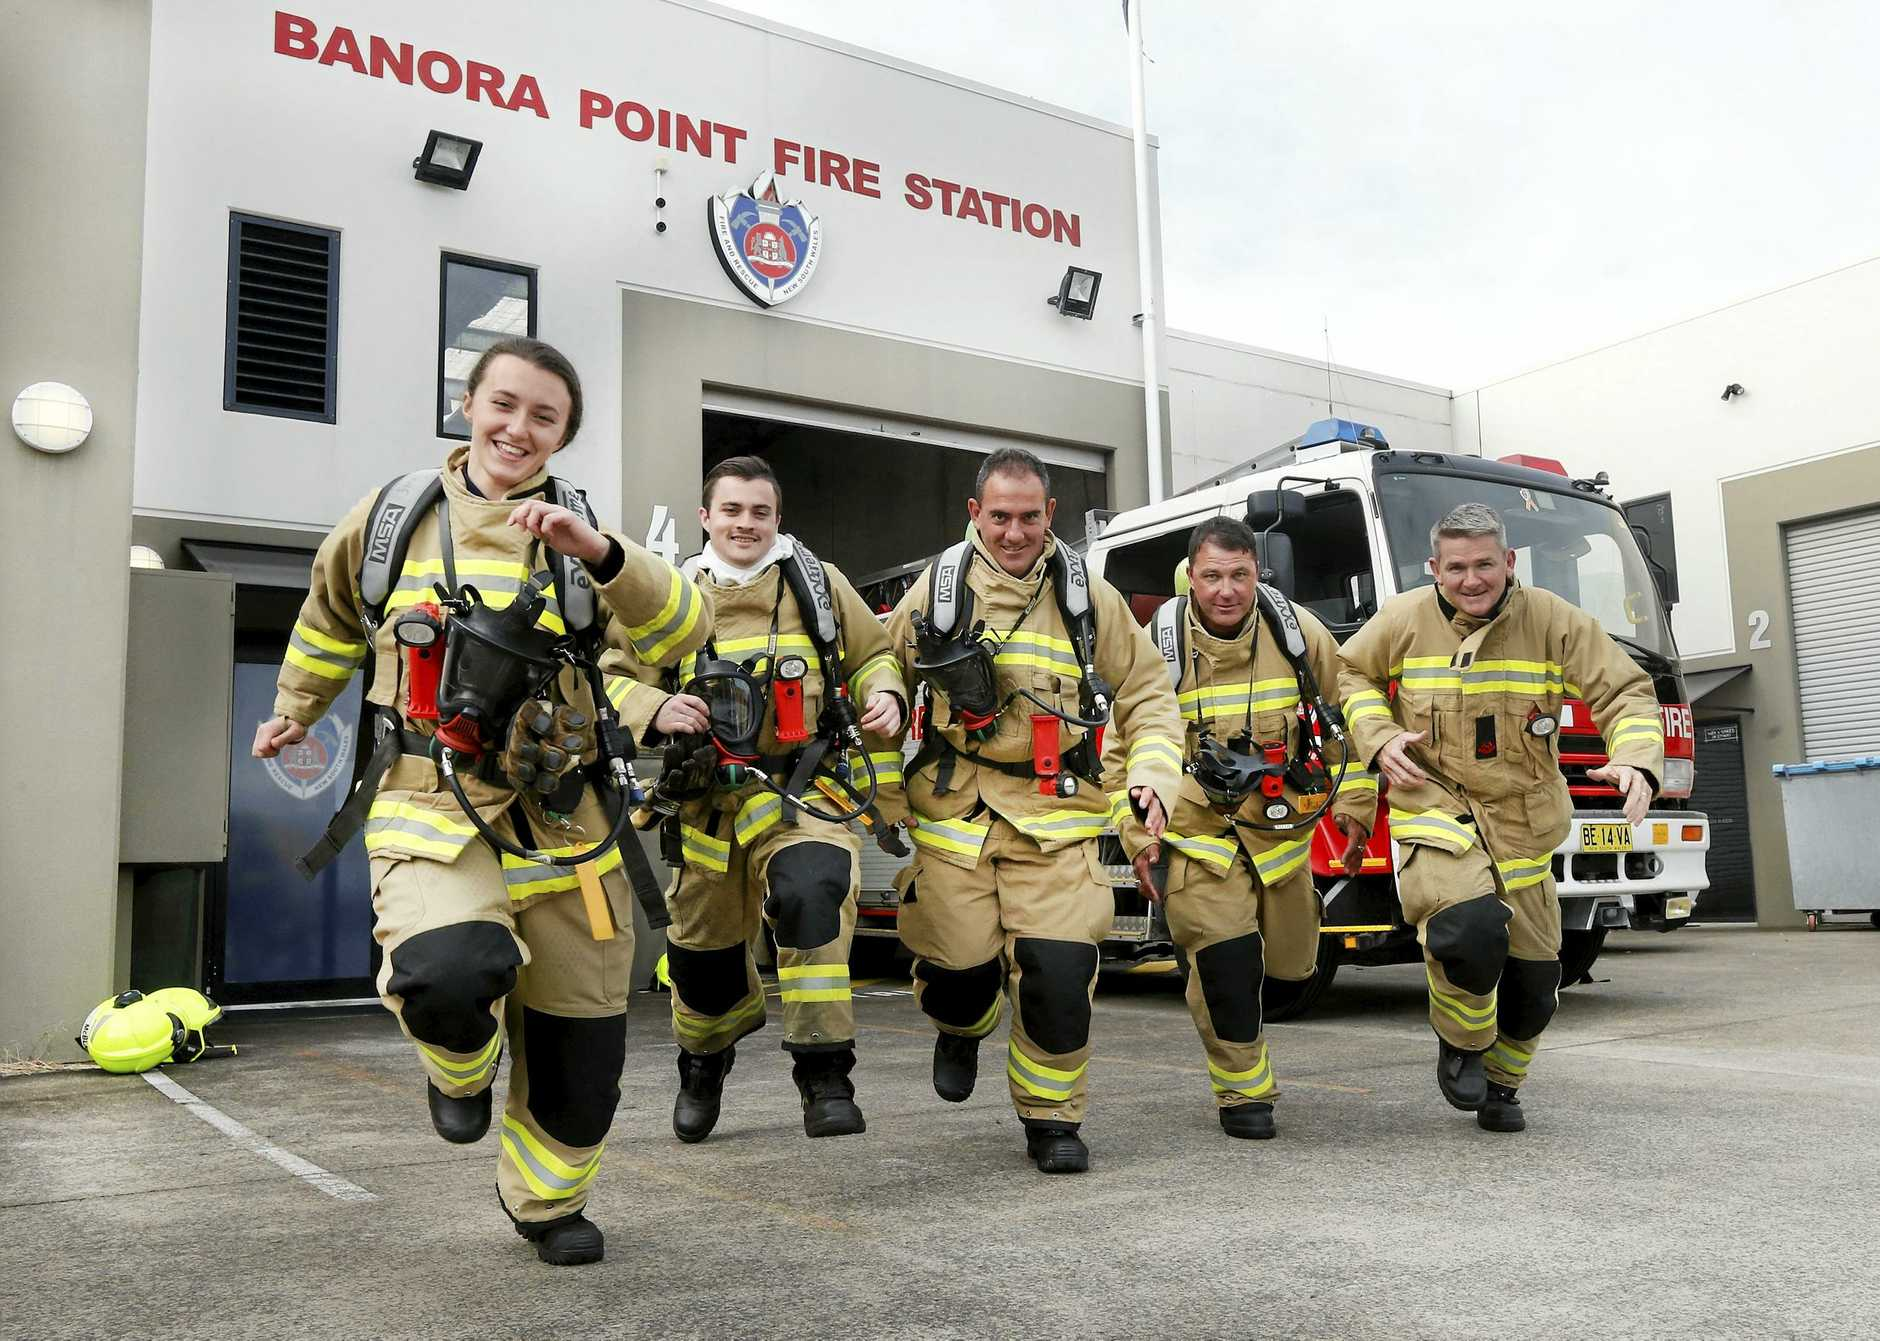 Banora fire-fighters Cyndell McBlain, Jamie Bowe, Rob Dascoli, Jason Williams and Paul Wills are climbing the Sydney Eye for charity in October.